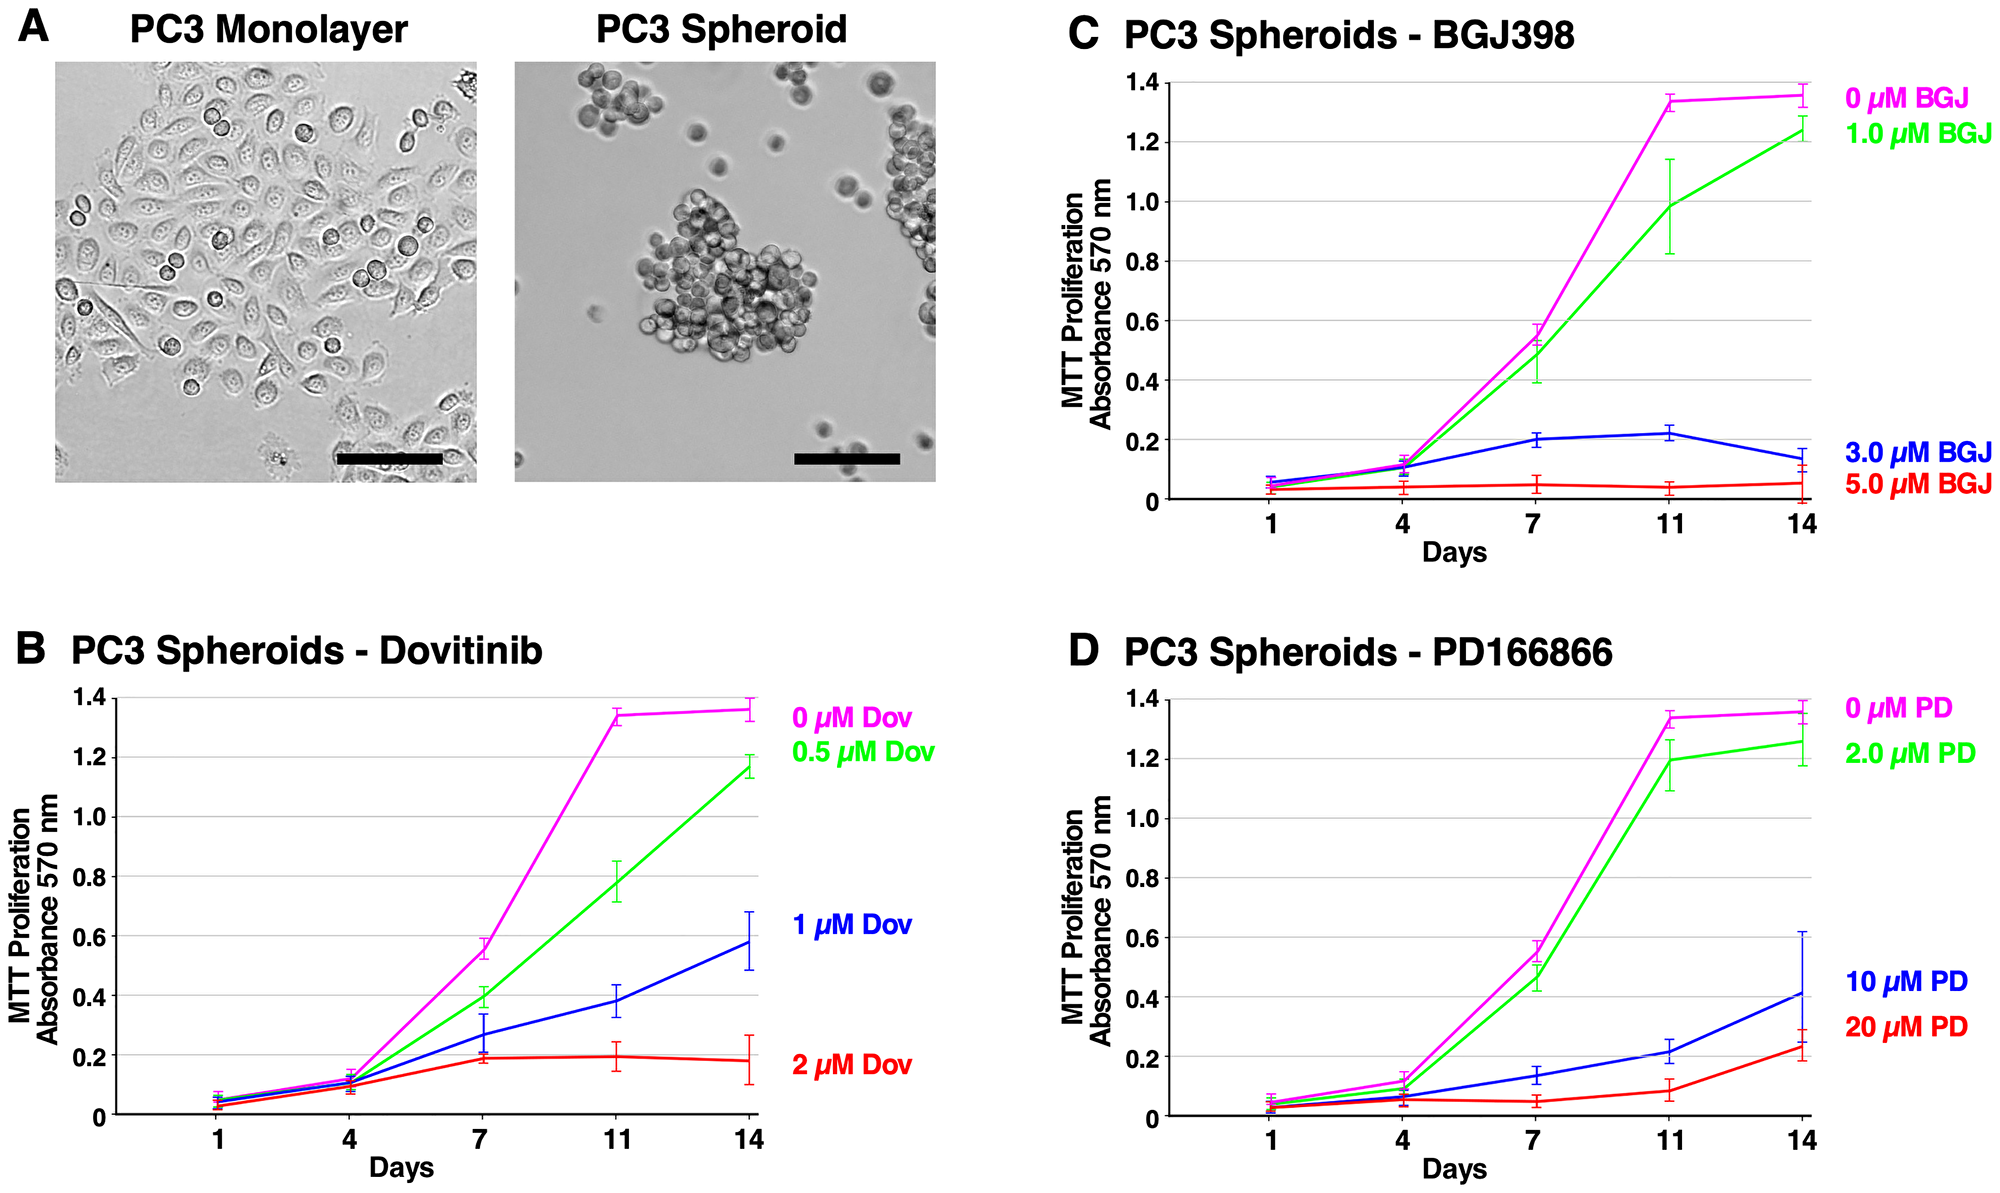 Formation of PC3 spheroids and inhibition of survival and growth via TKI treatment.